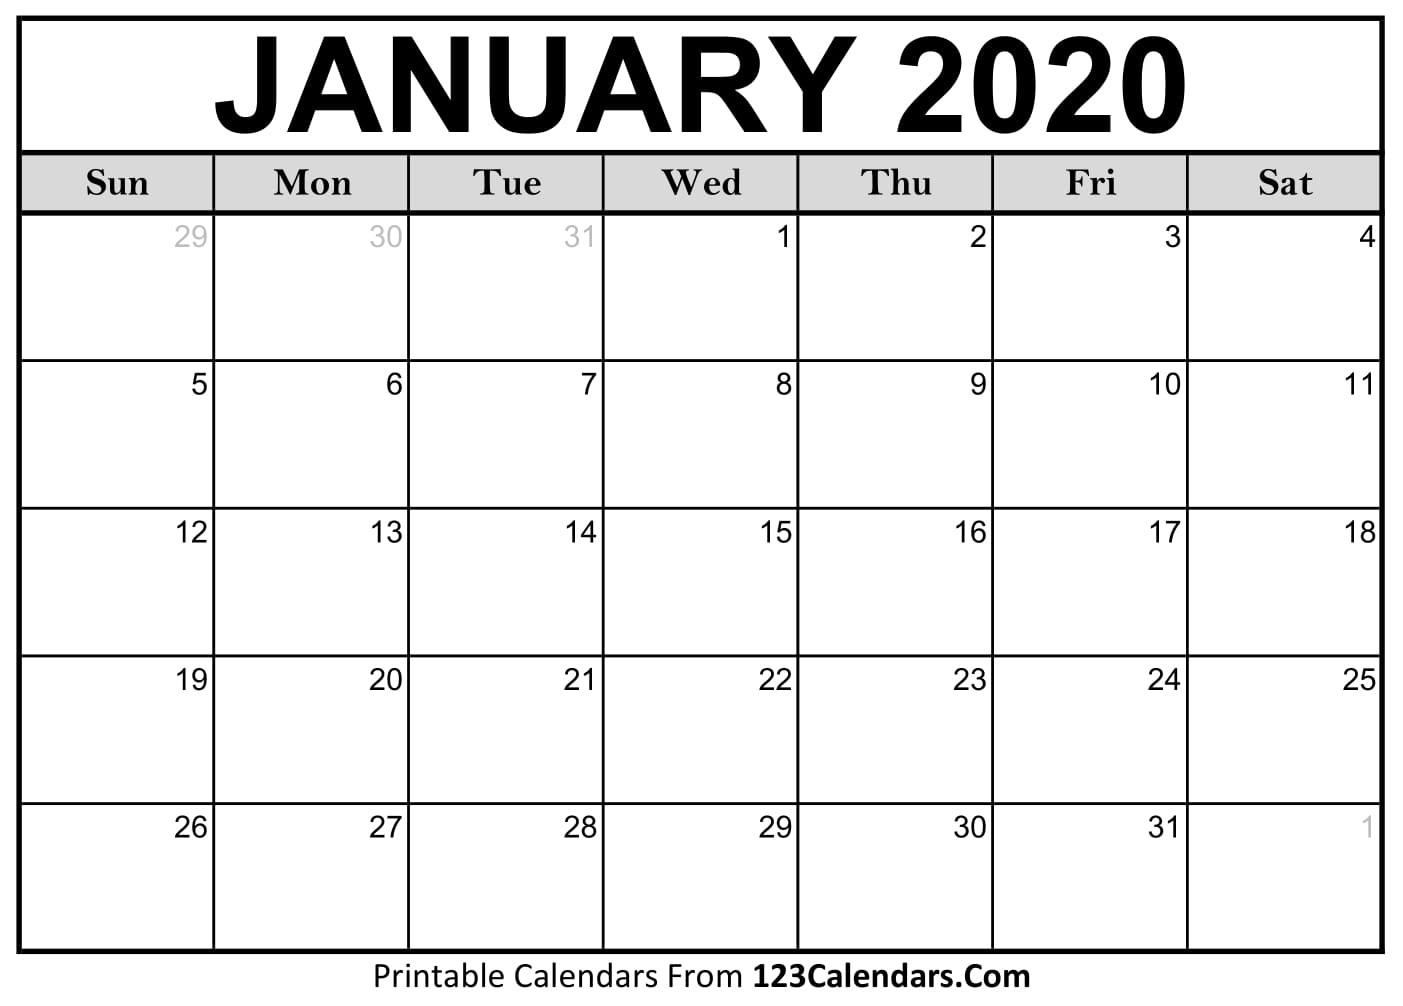 January Printable Calendars - Wpa.wpart.co